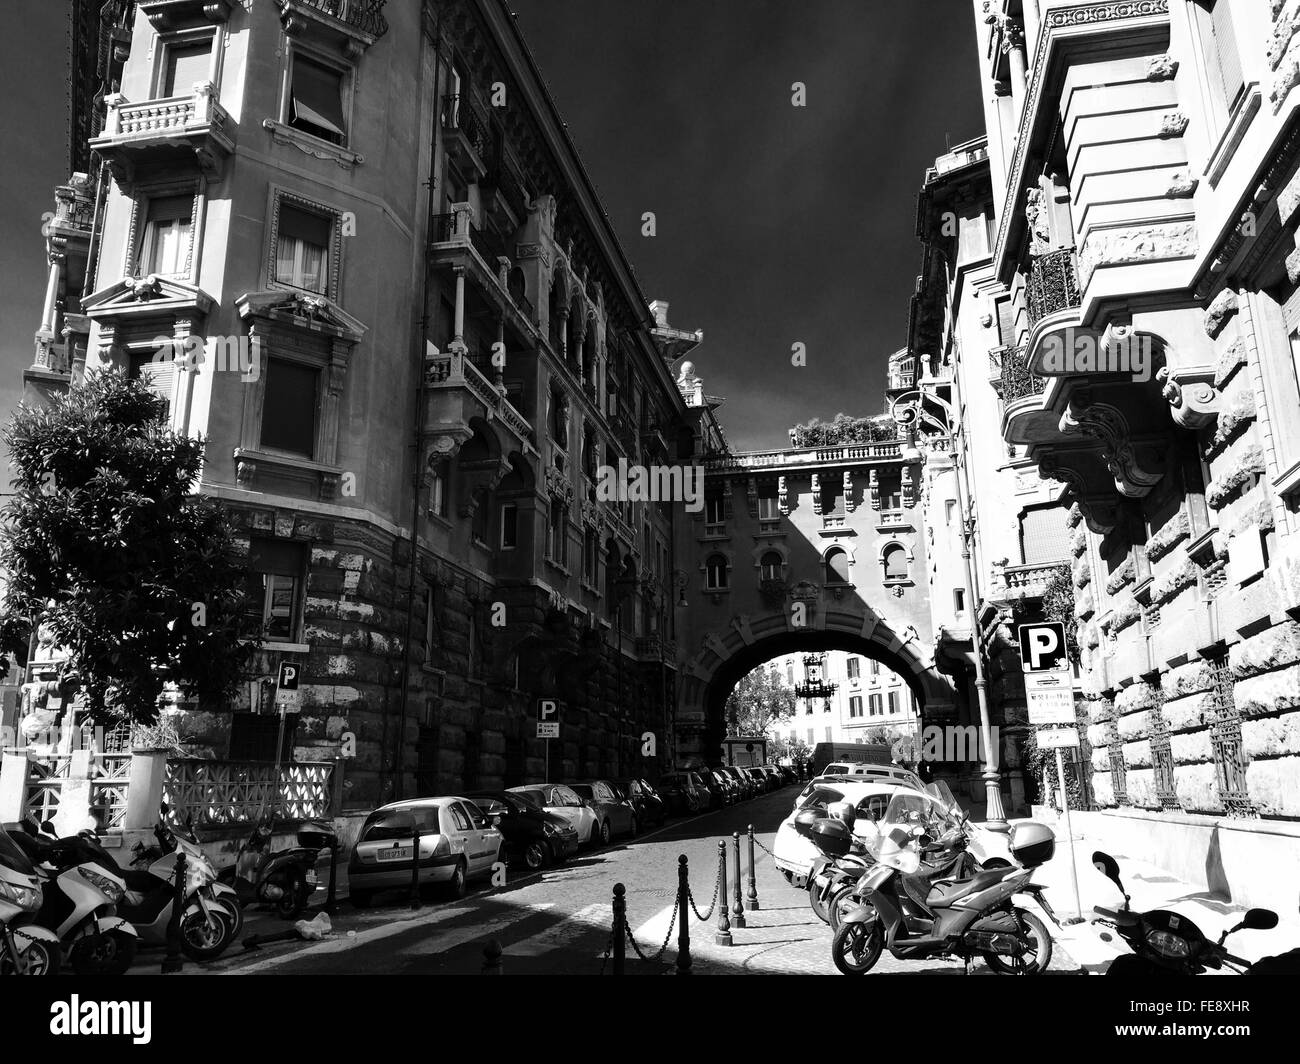 Cars Parked On Road Amidst Buildings In City - Stock Image